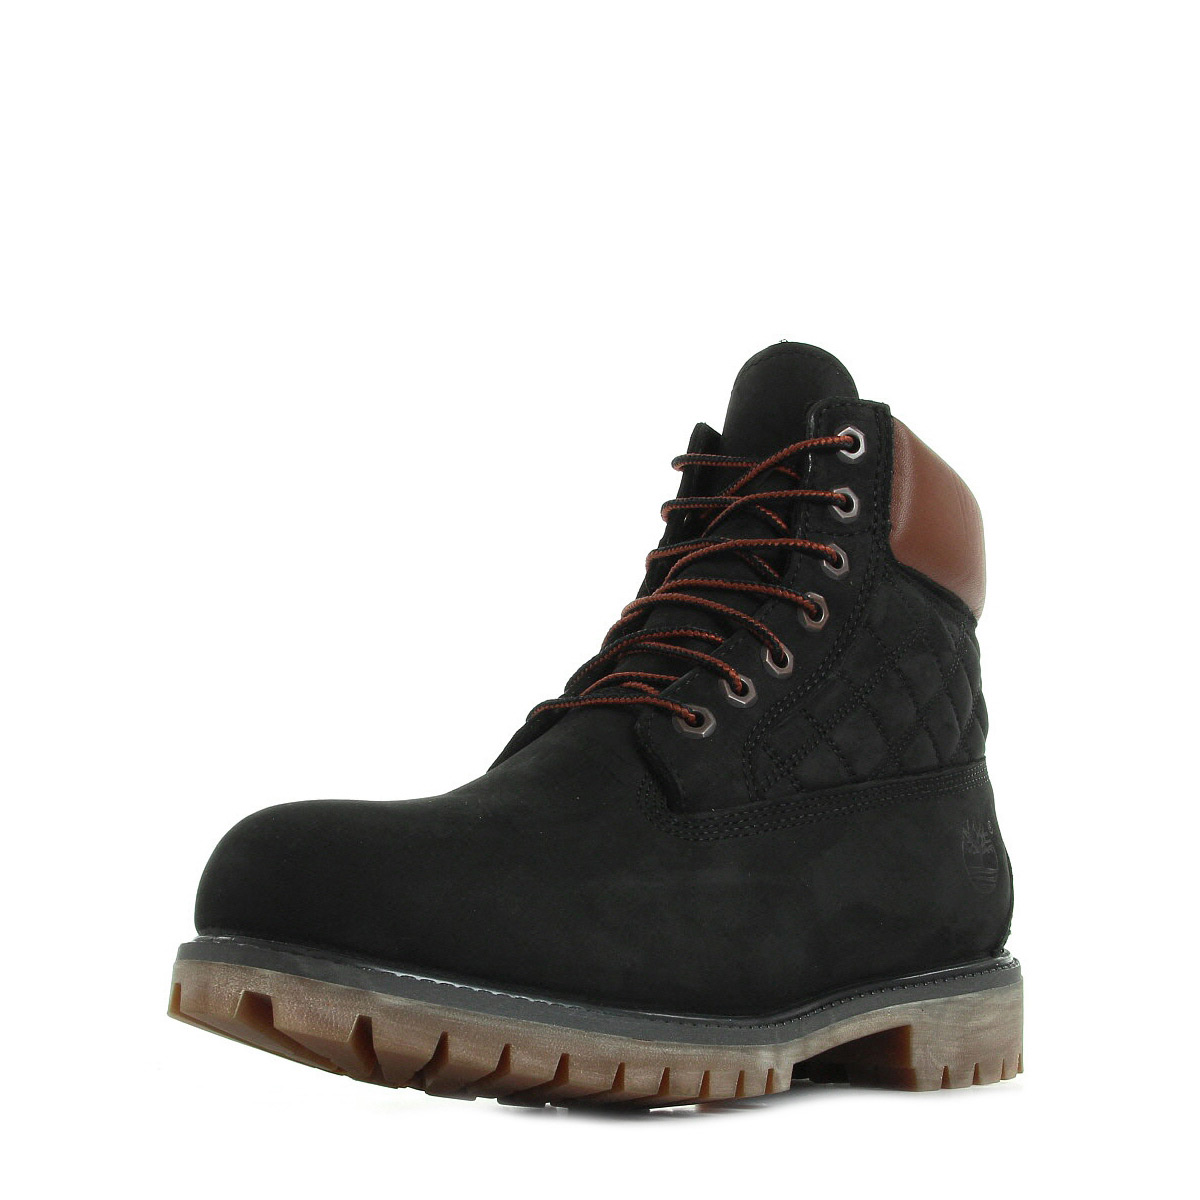 Timberland 6 IN Premium Boot CA119L, Boots homme